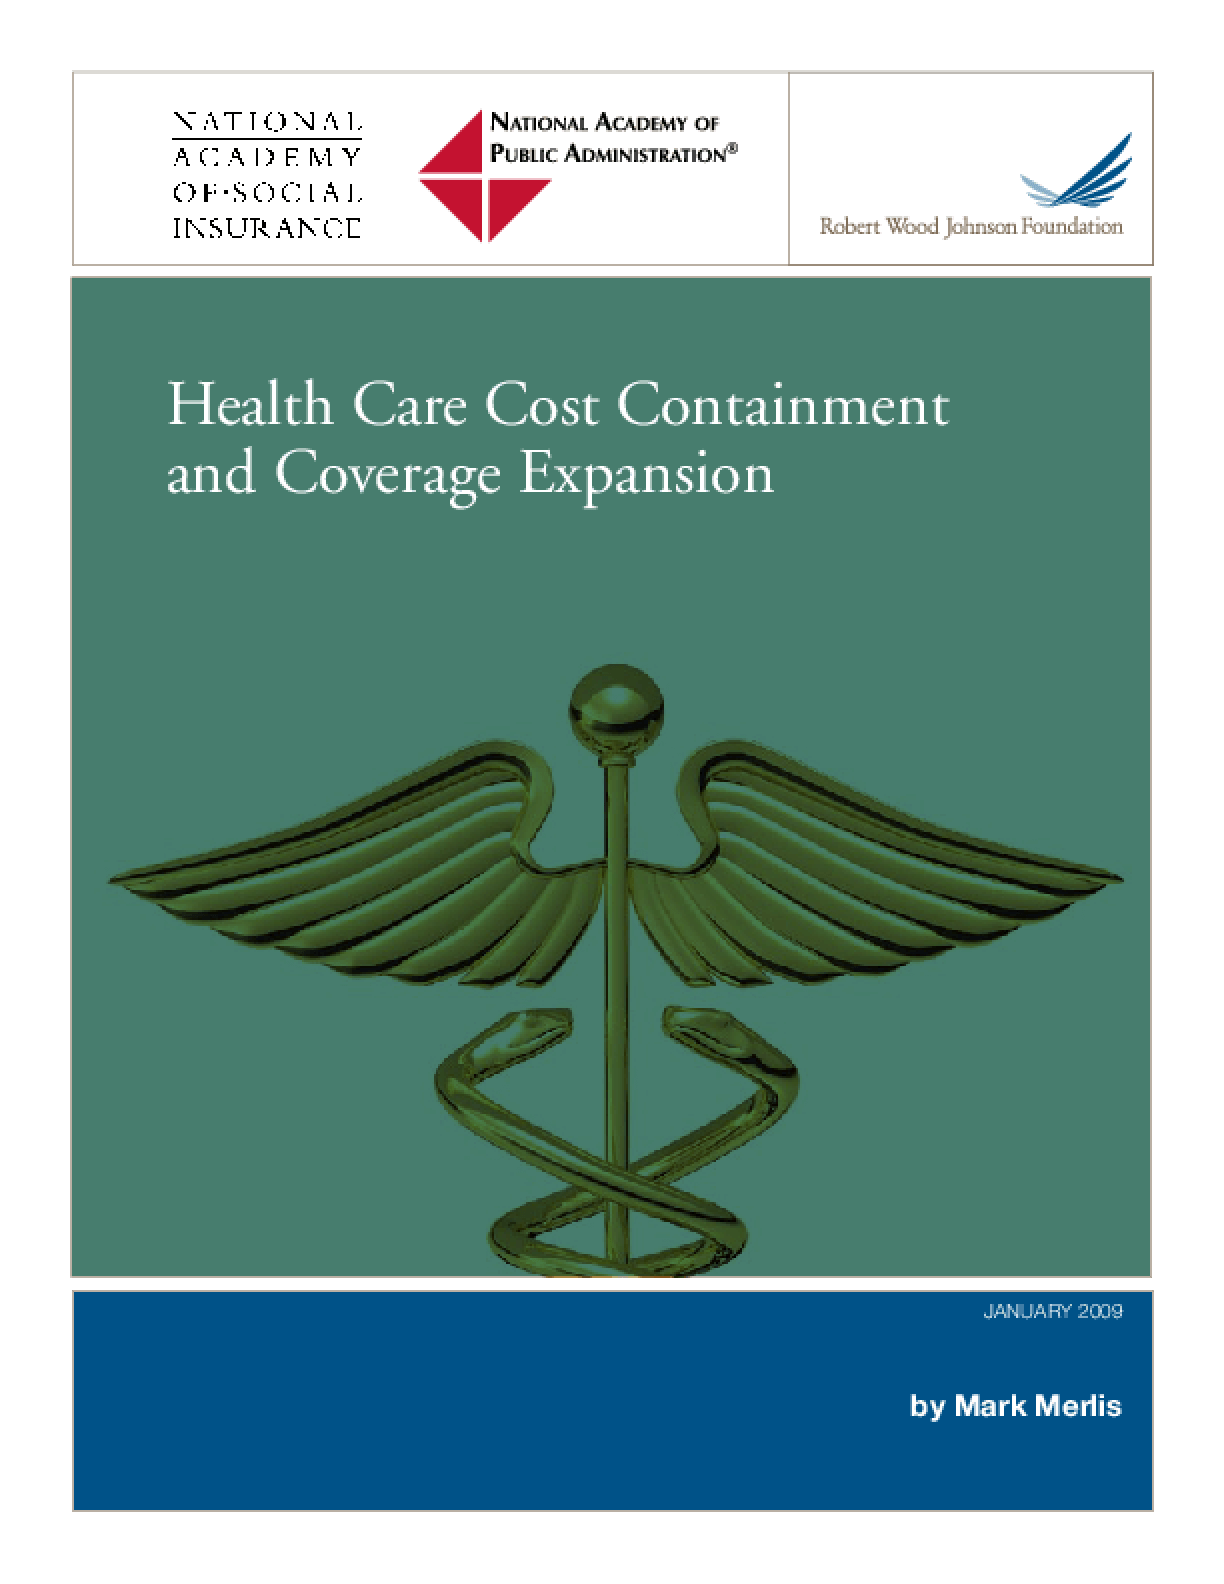 Health Care Cost Containment and Coverage Expansion